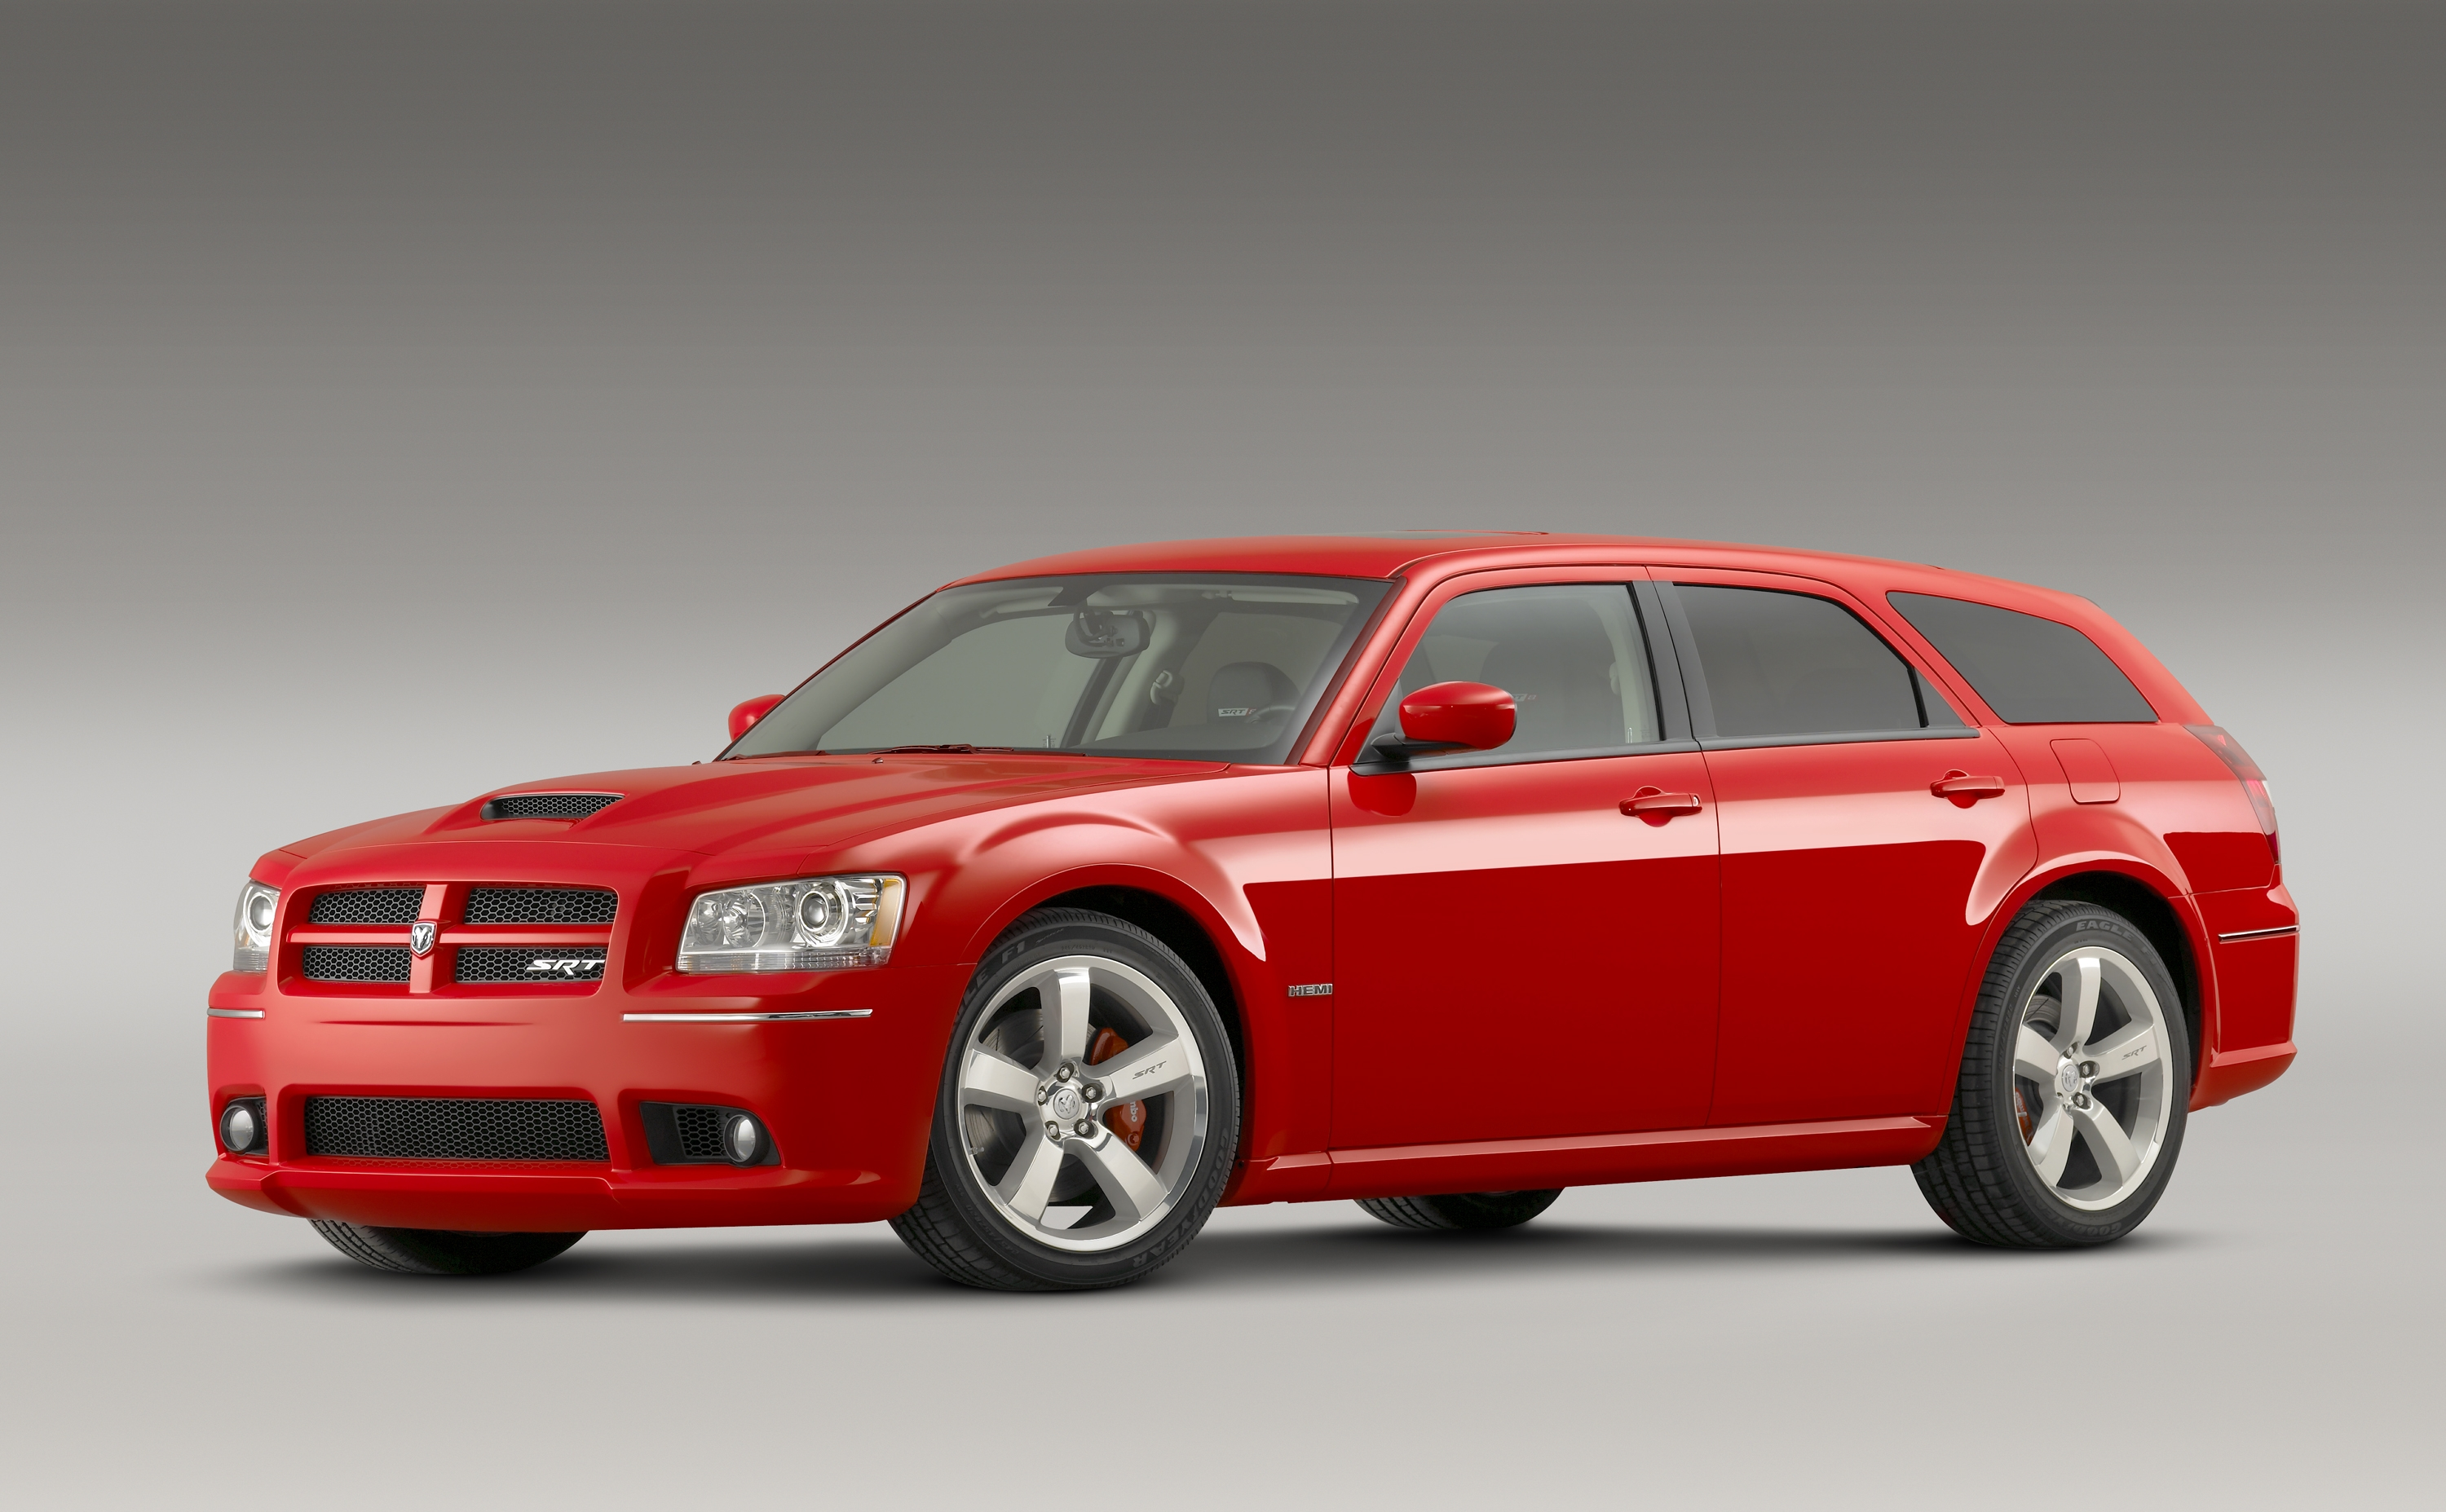 2016 Dodge Magnum >> We Hear Dodge Magnum Revival Dead On Arrival Motortrend